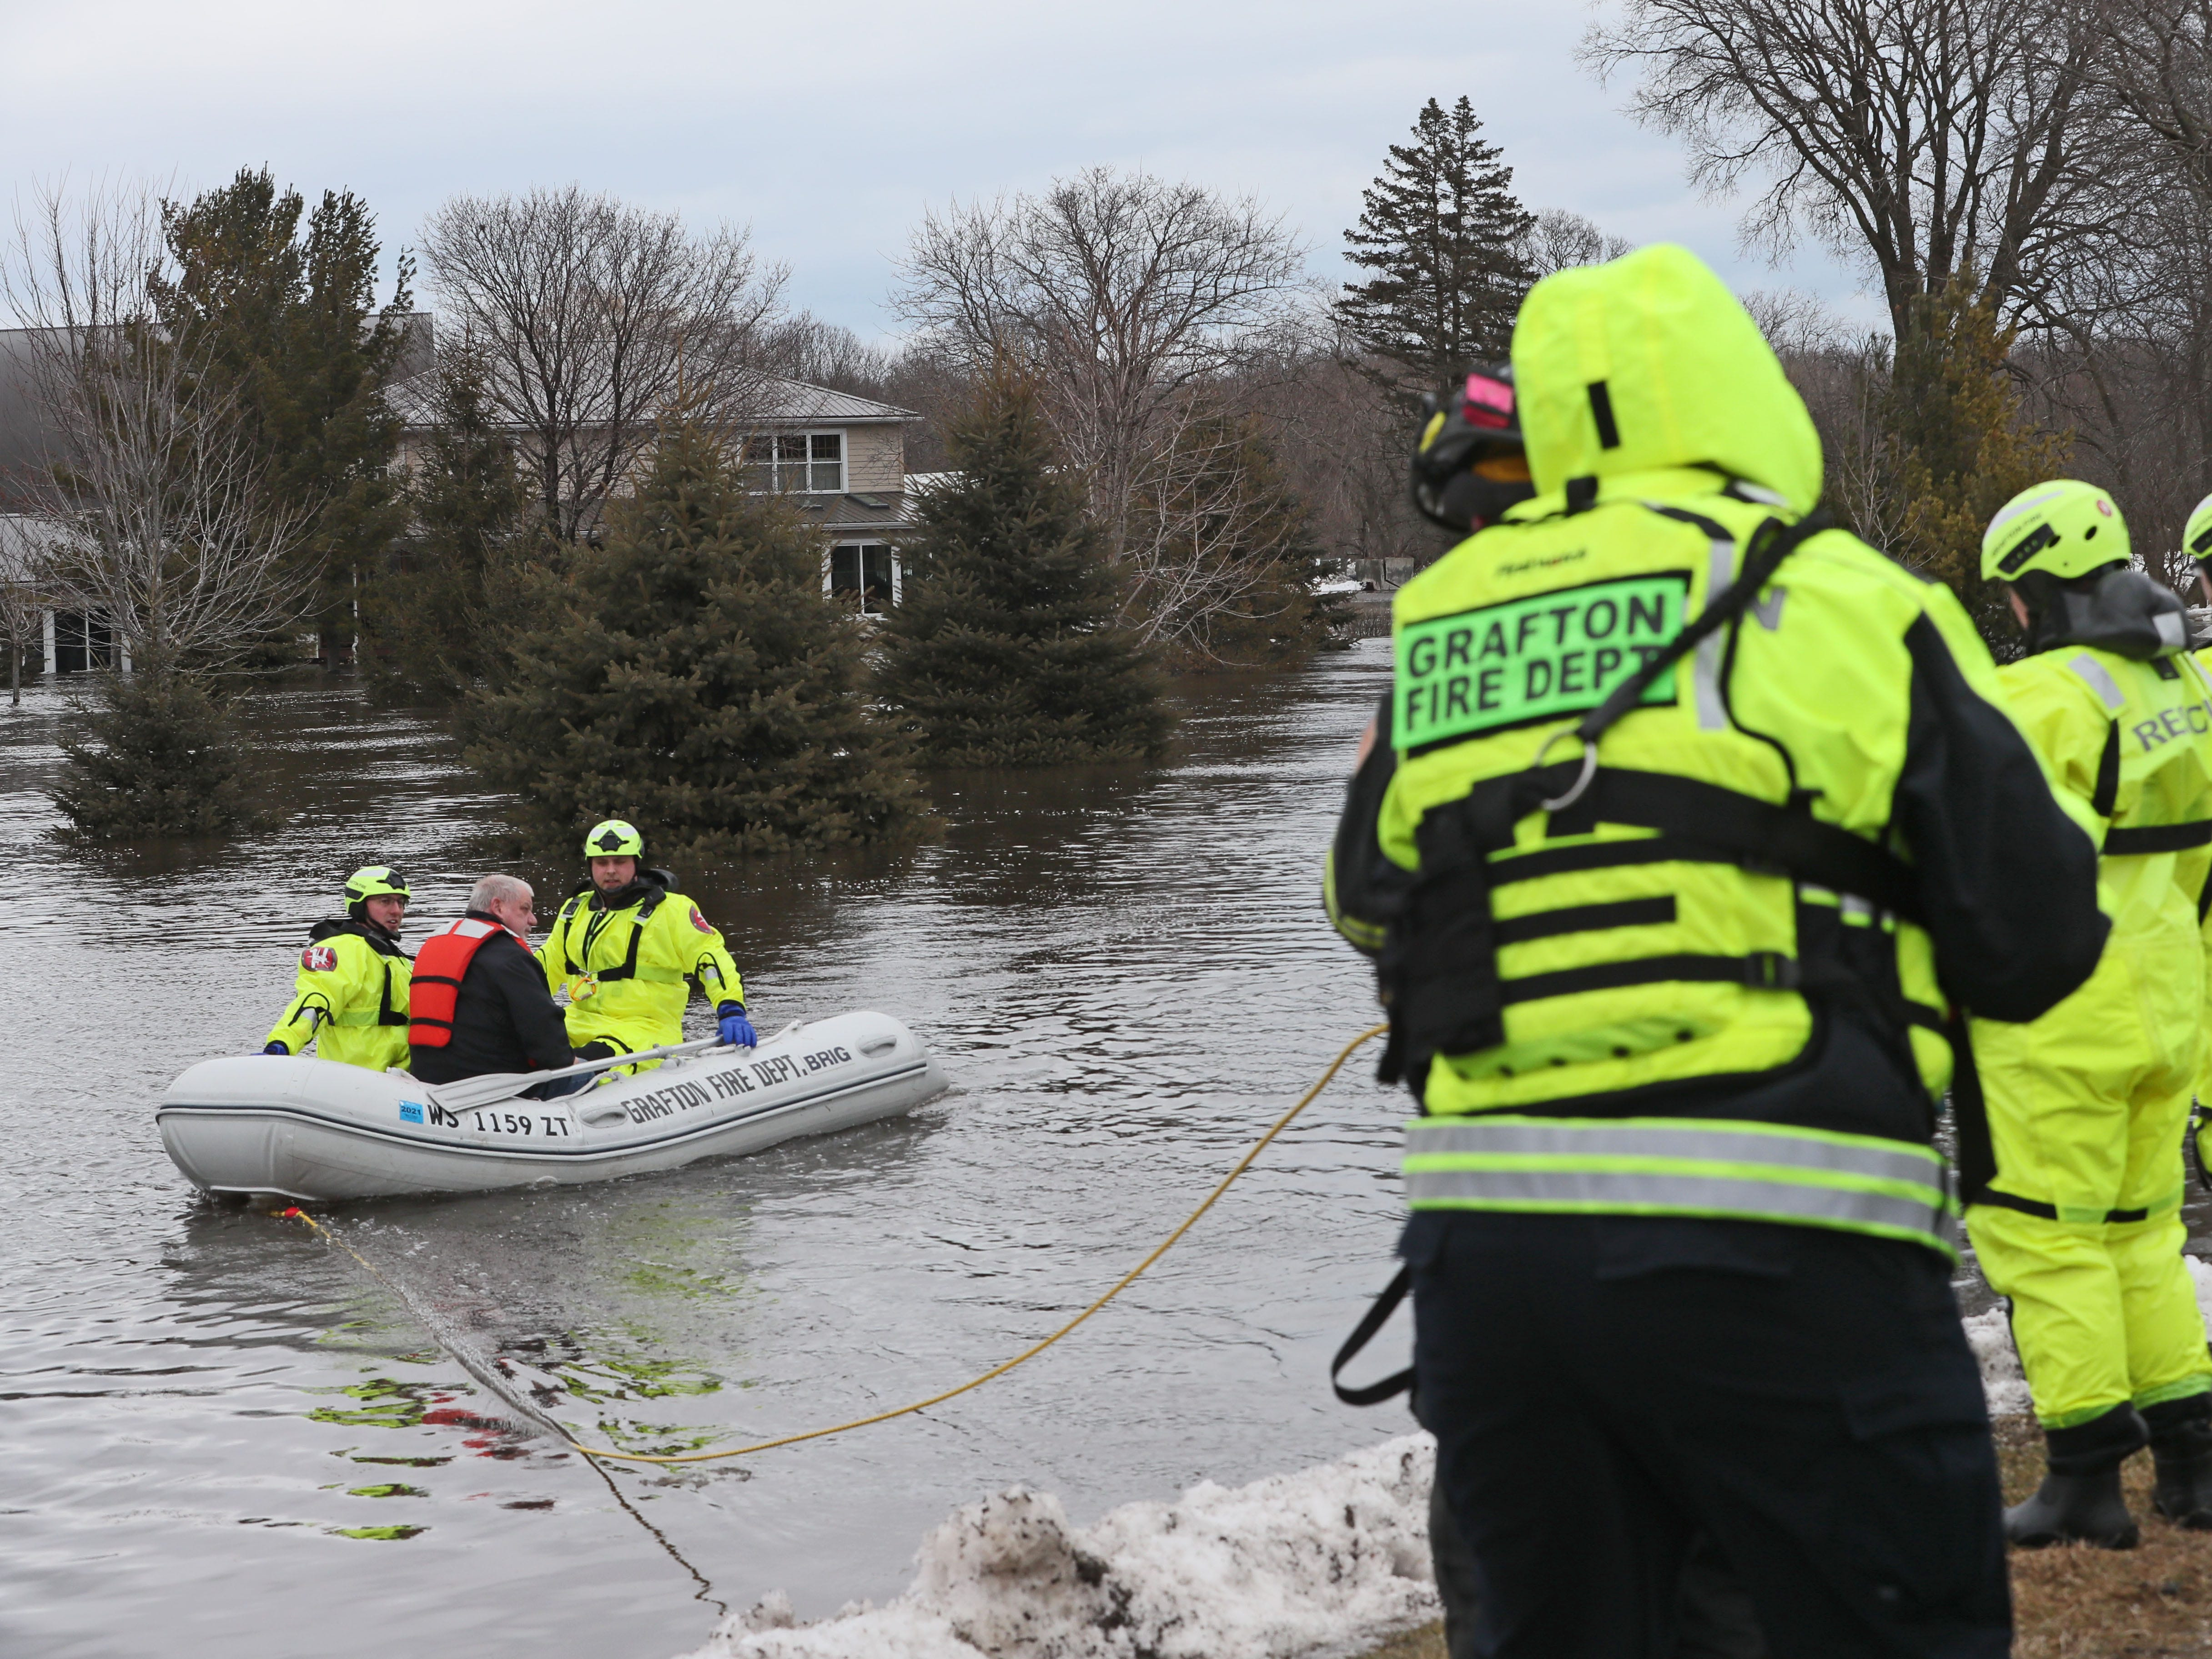 Firefighters bring a man to high ground in their boat that was rescued from the house at rear. March 15, 2019 Grafton firefighters rescued two people from the Riverview Kennel on the Milwaukee River at  1584 Pioneer Rd in Cedarburg.  Ice going out on the river was blocked by bridge diverting flow over the Cty Highway C and the surround low areas.